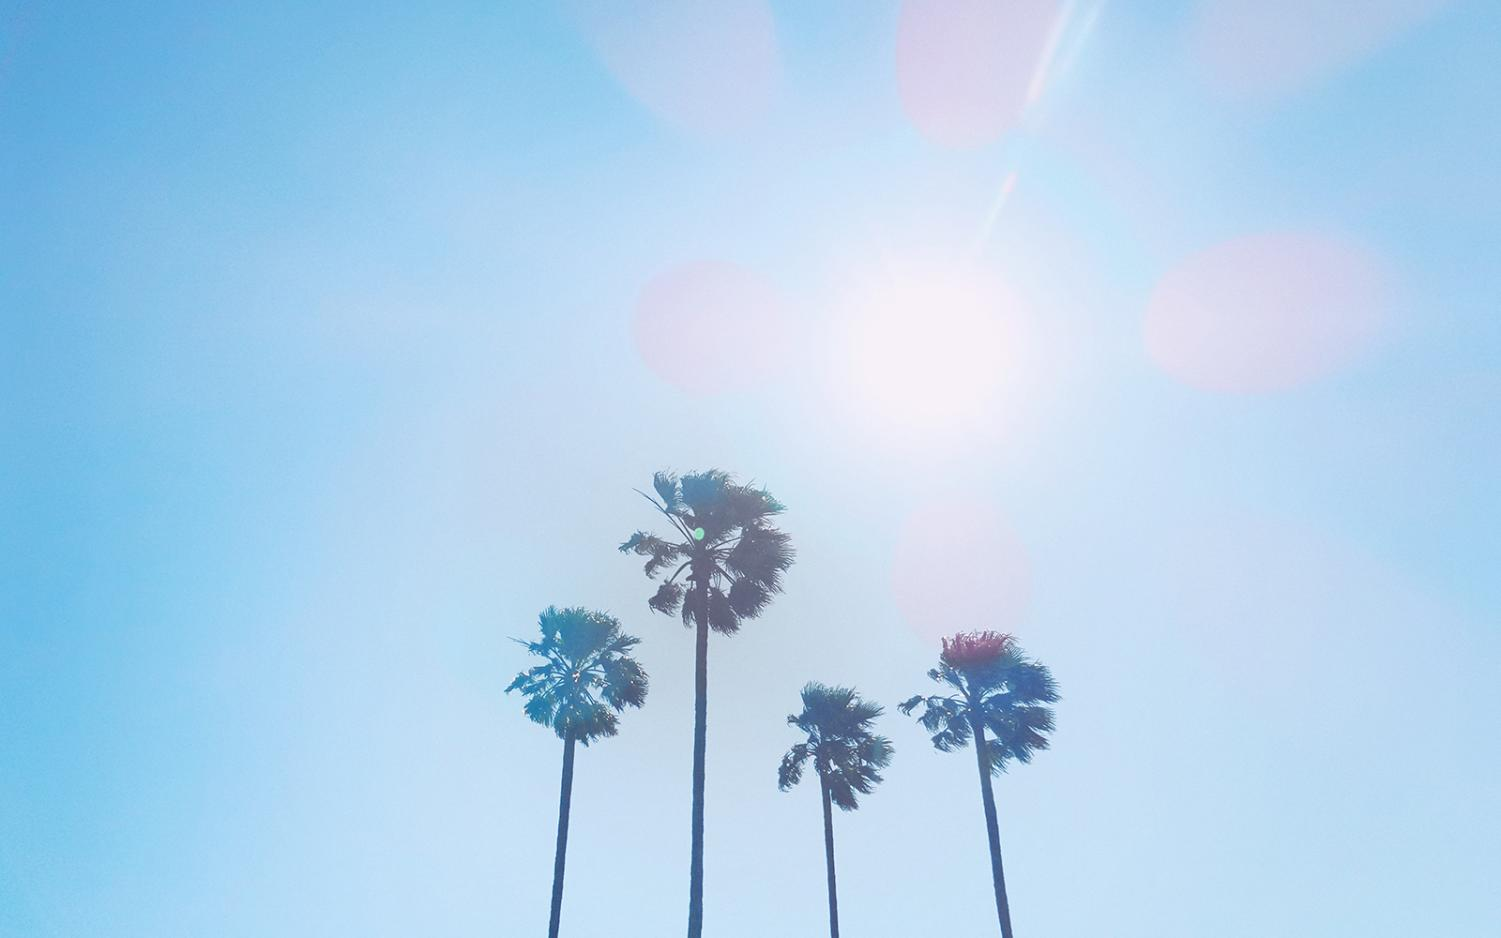 Sun, wind, trees. (Photo by Franck V via Unsplash)